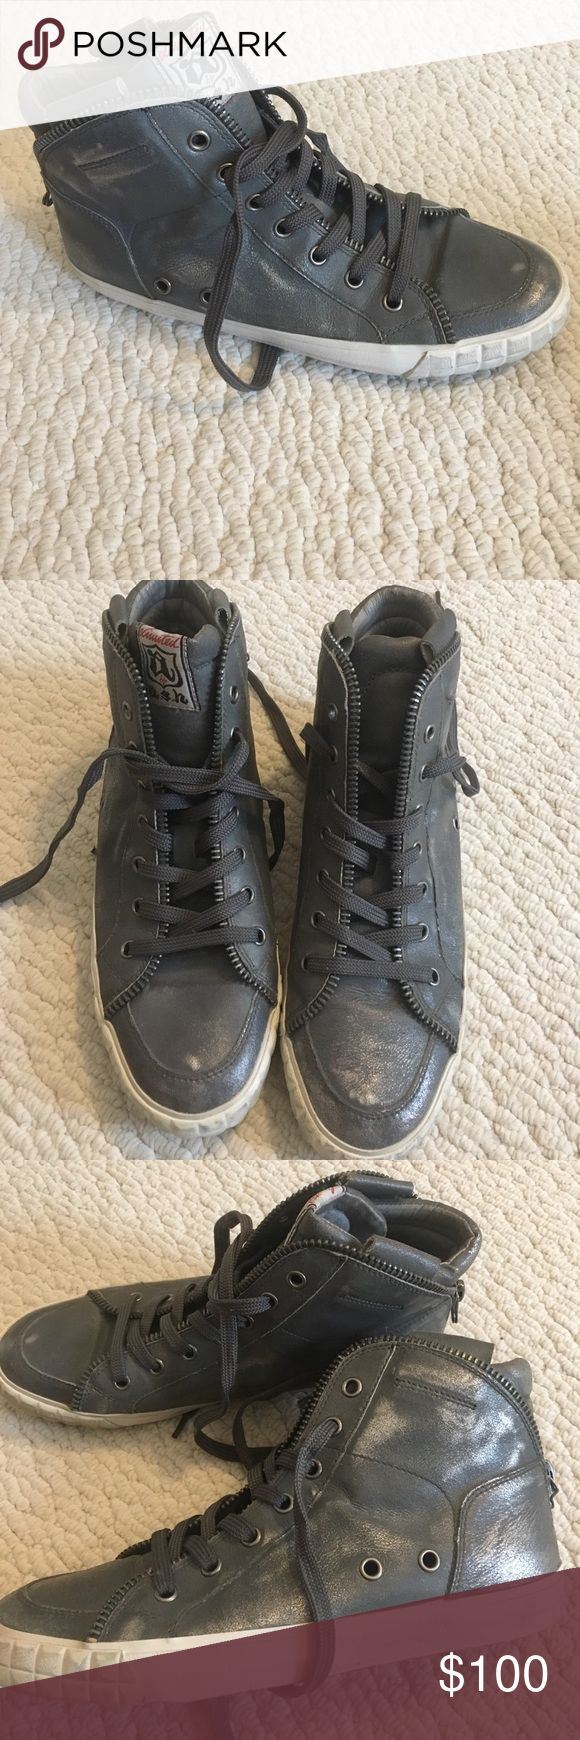 Ash sneakers. high tops. Size 39 (9) Ash gray high tops. Brand new. Size 9 gray Ash Shoes Sneakers